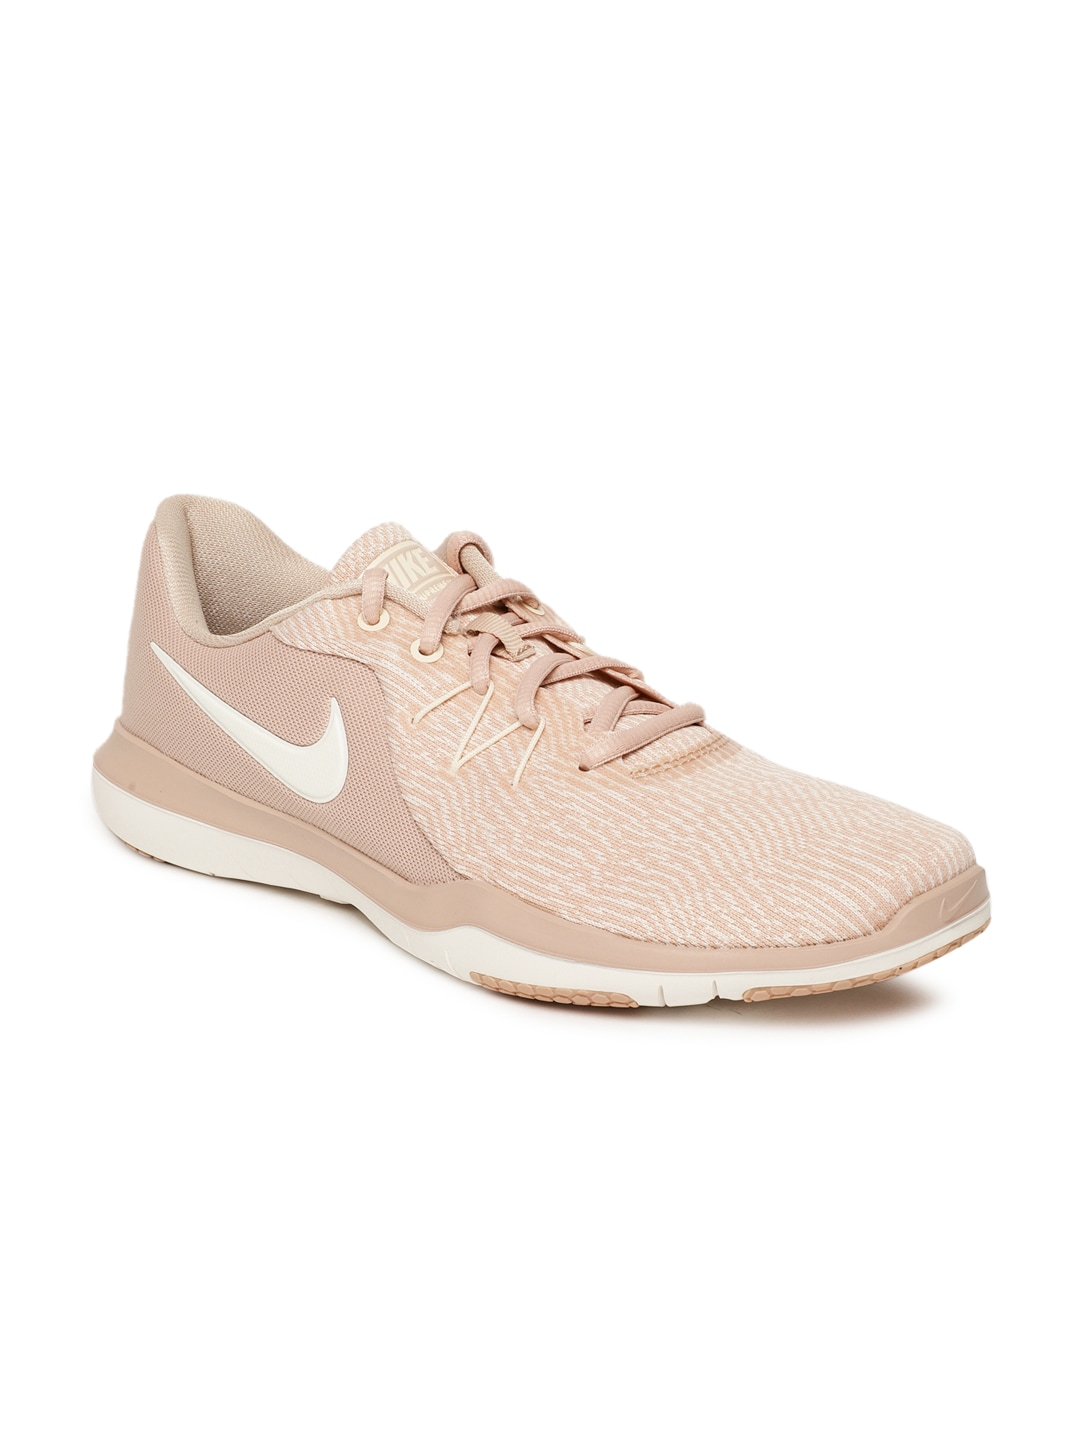 7611dc807c27 Tr6 Nike Sports Shoes - Buy Tr6 Nike Sports Shoes online in India